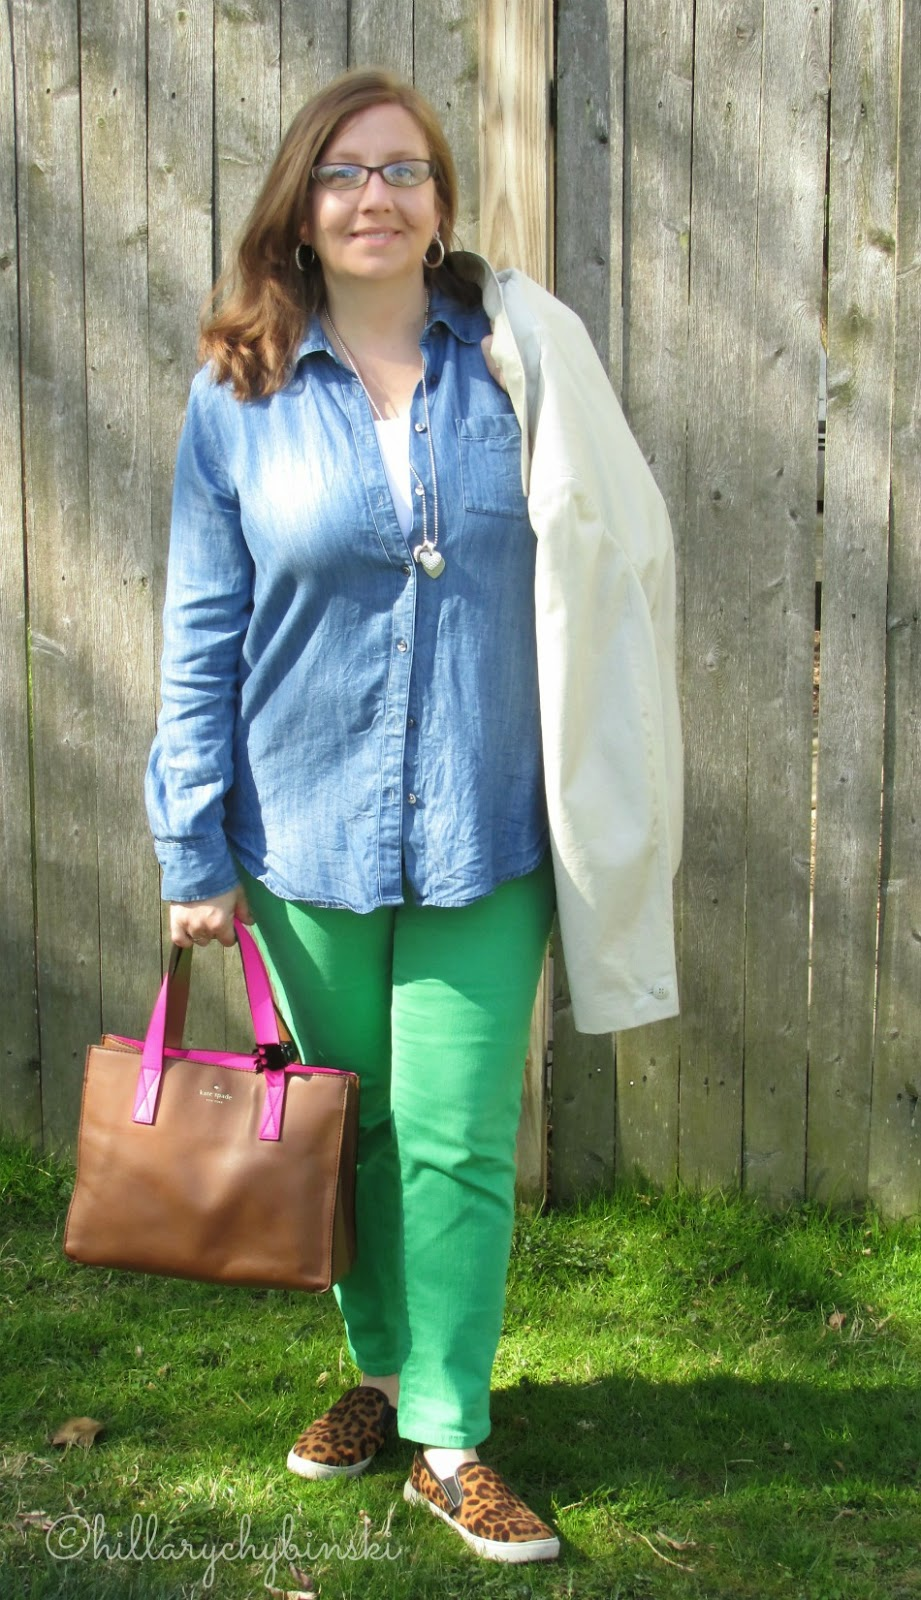 Styling Green Jeans for Spring - How to Wear Colored Jeans